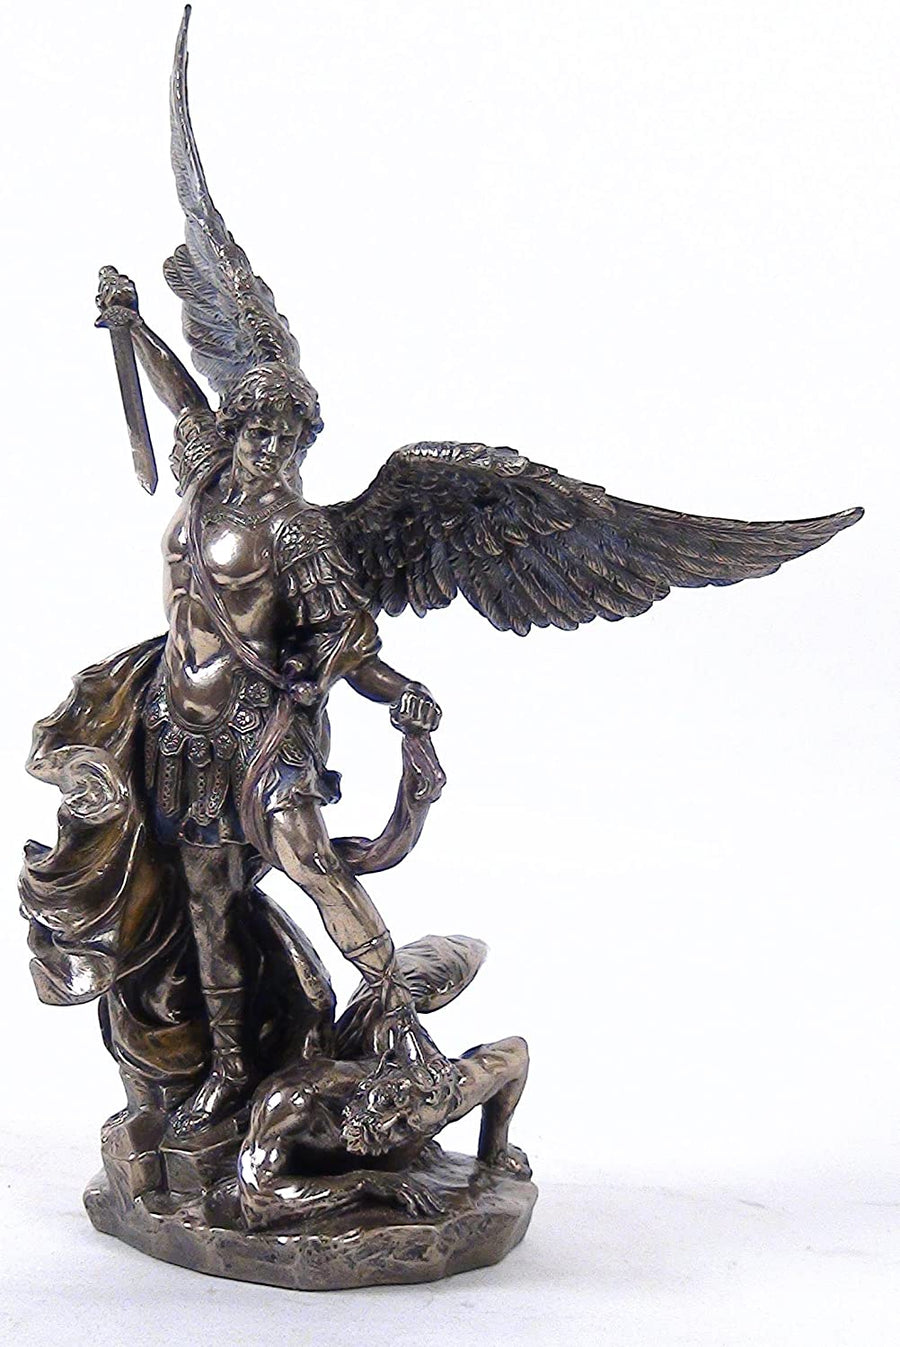 10.25 Inch Saint Michael on Demon with Sword Cold Cast Bronze Figurine